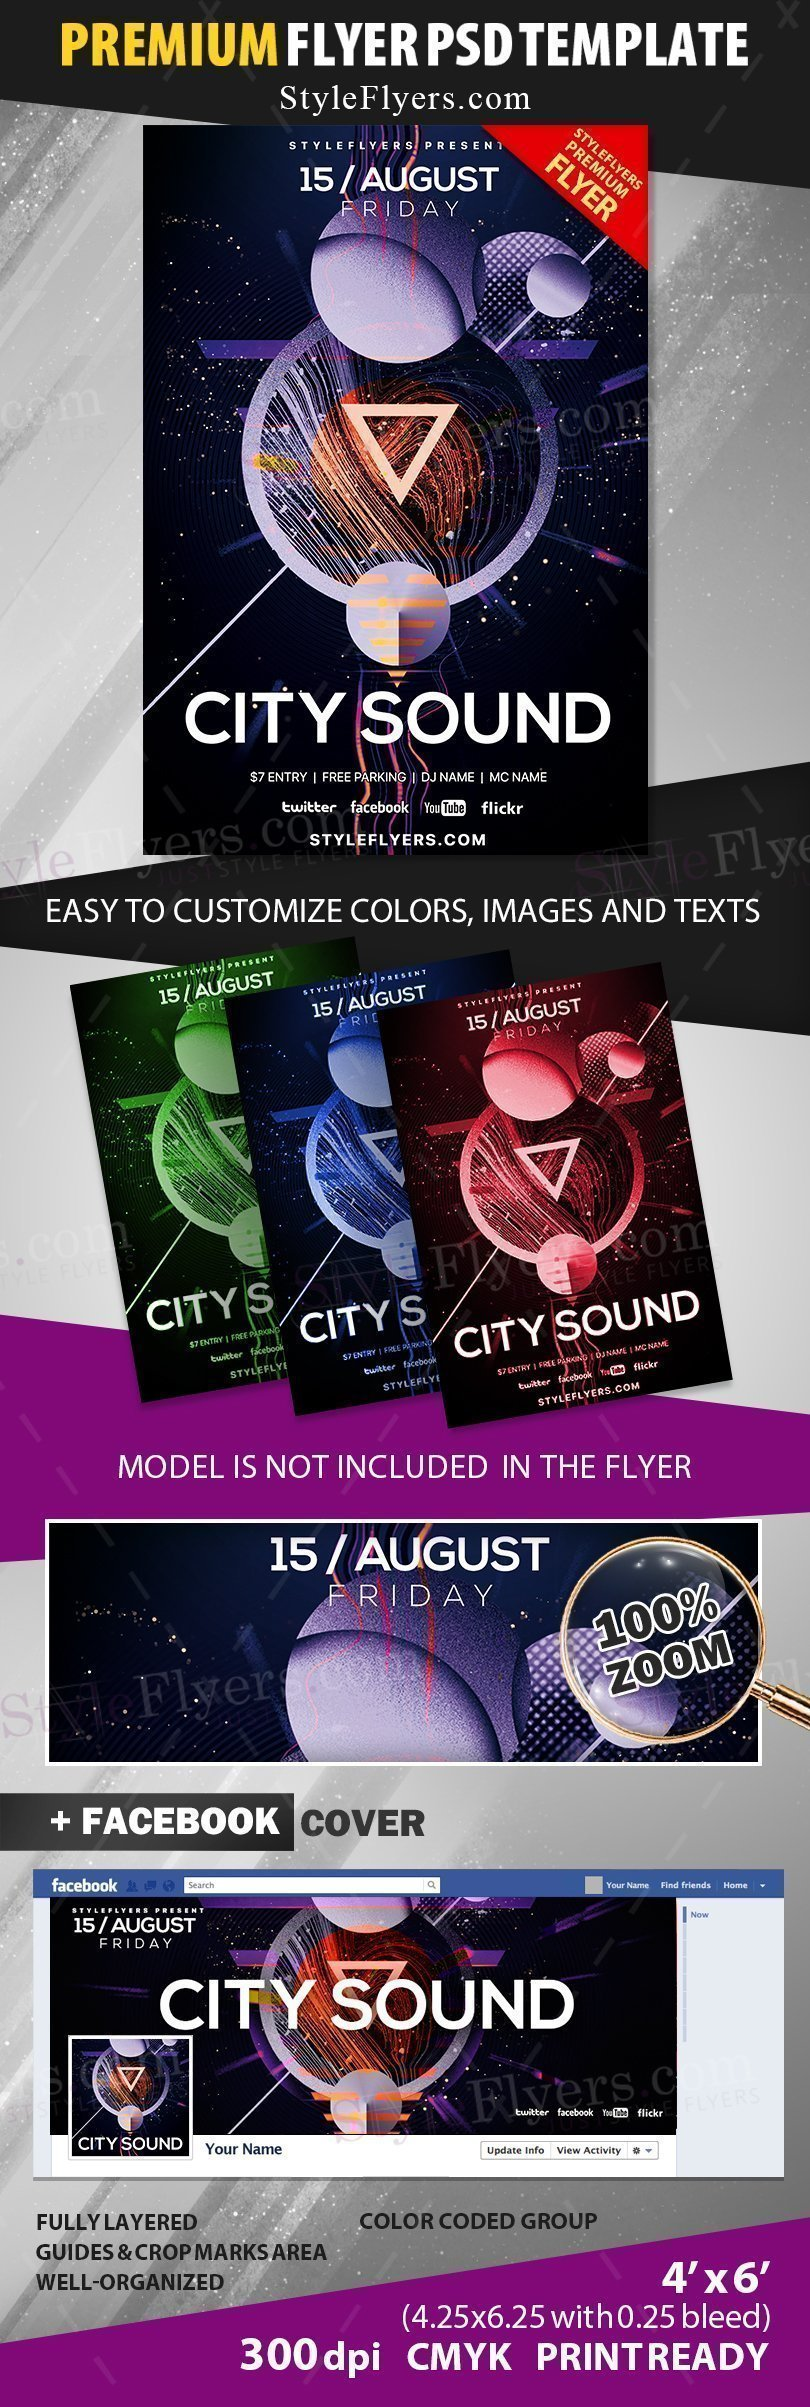 preview_city sound_psd_flyer